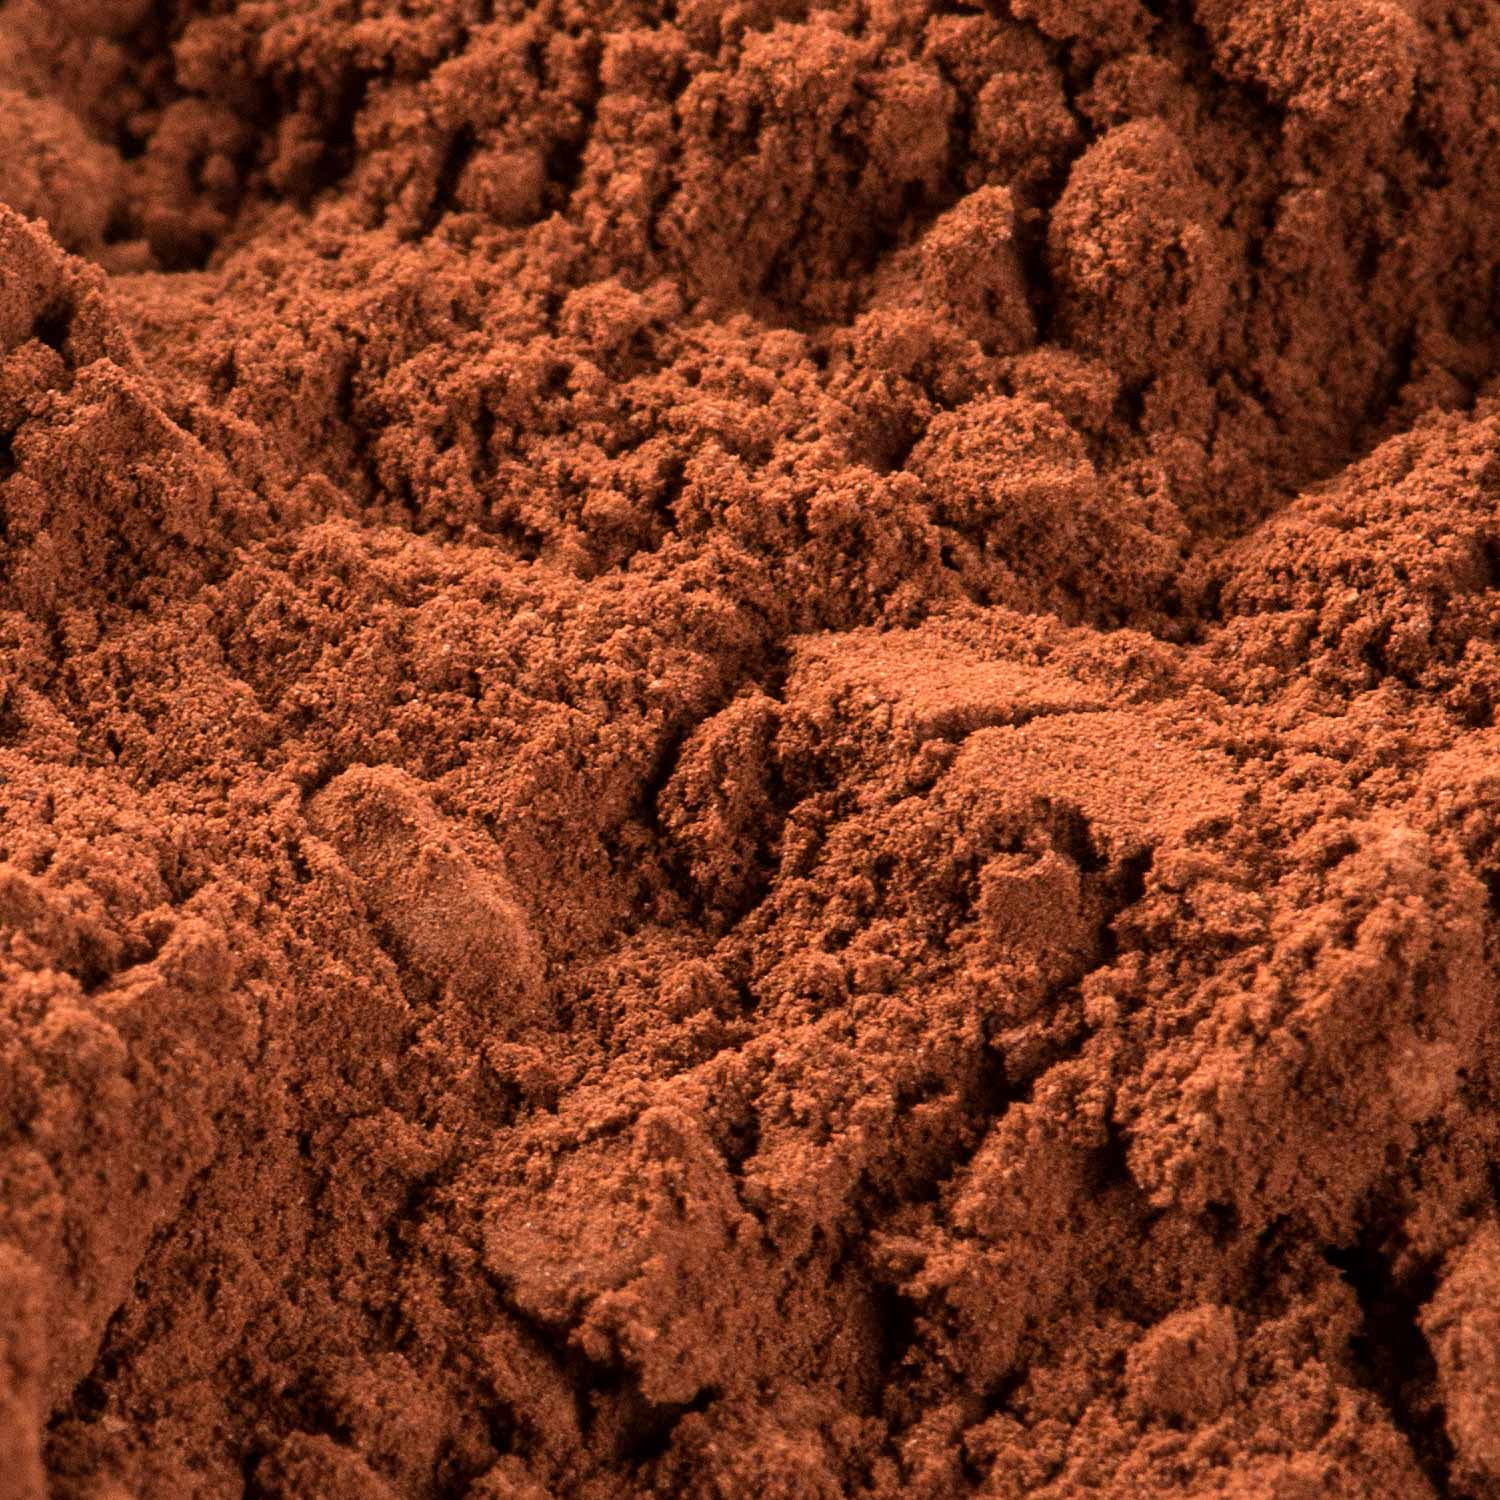 Cacao Powder - 100% Organic Raw Cacao - Premium Quality From Arriba Nacional Cacao in Ecuador.- No added sugar